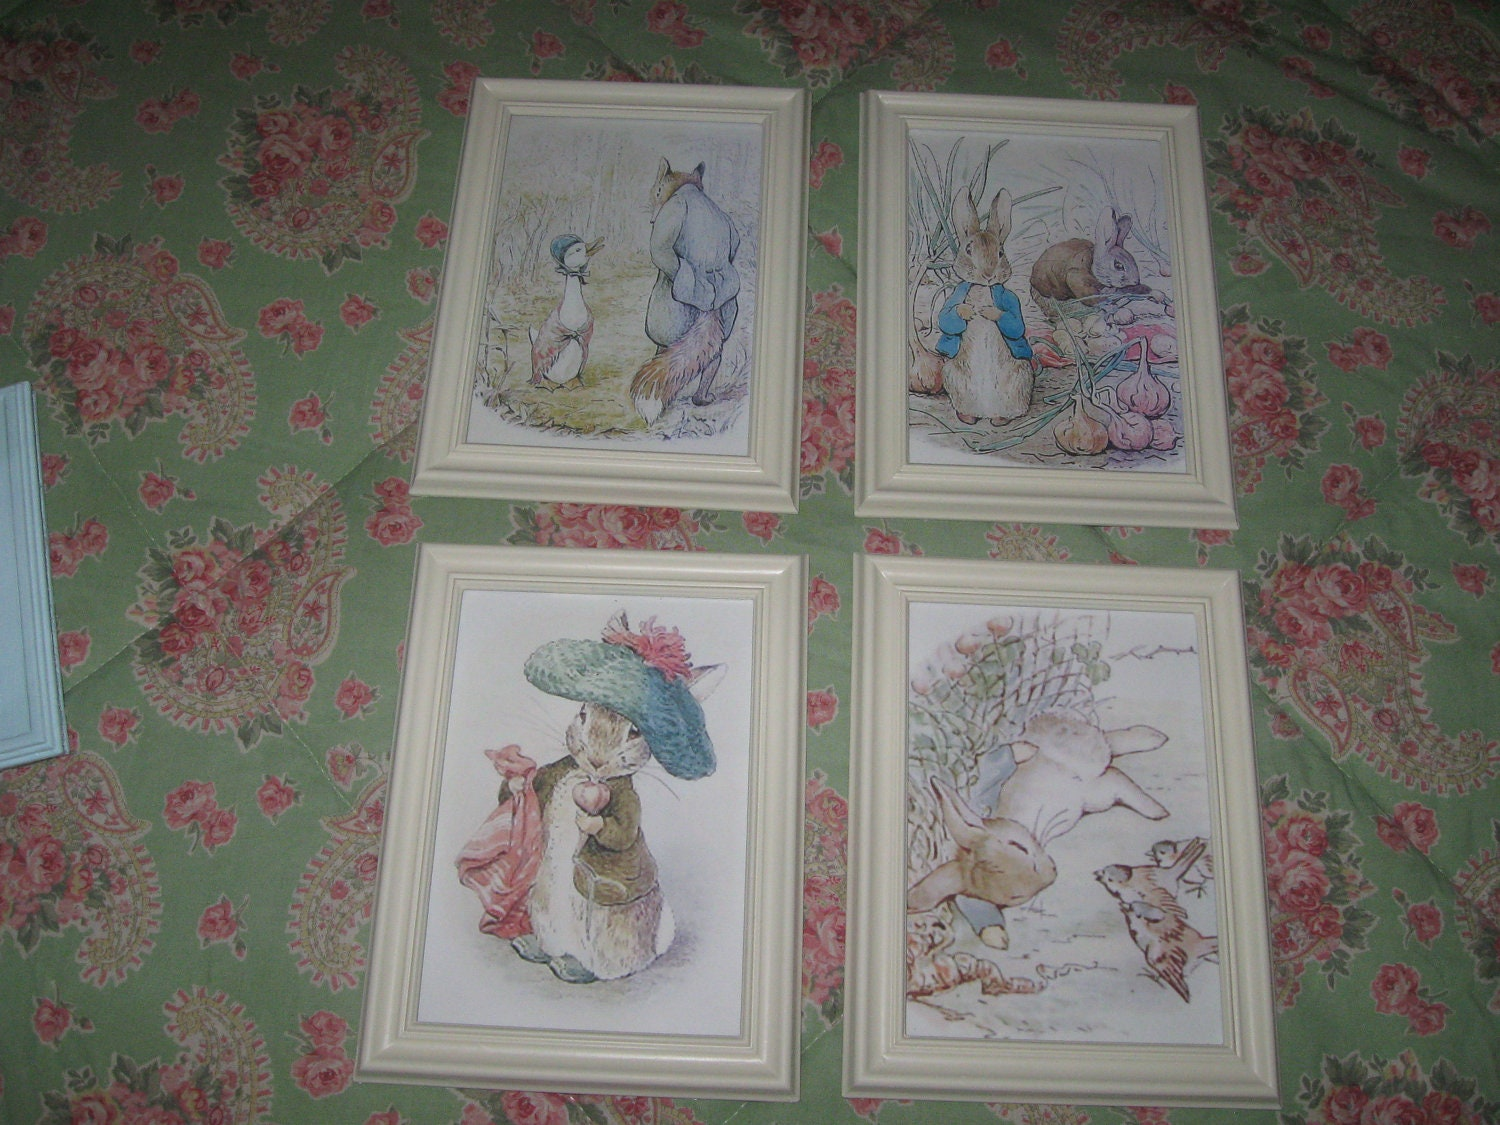 Peter Rabbit And Friends By Beatrix Potter 5 X 7 Framed